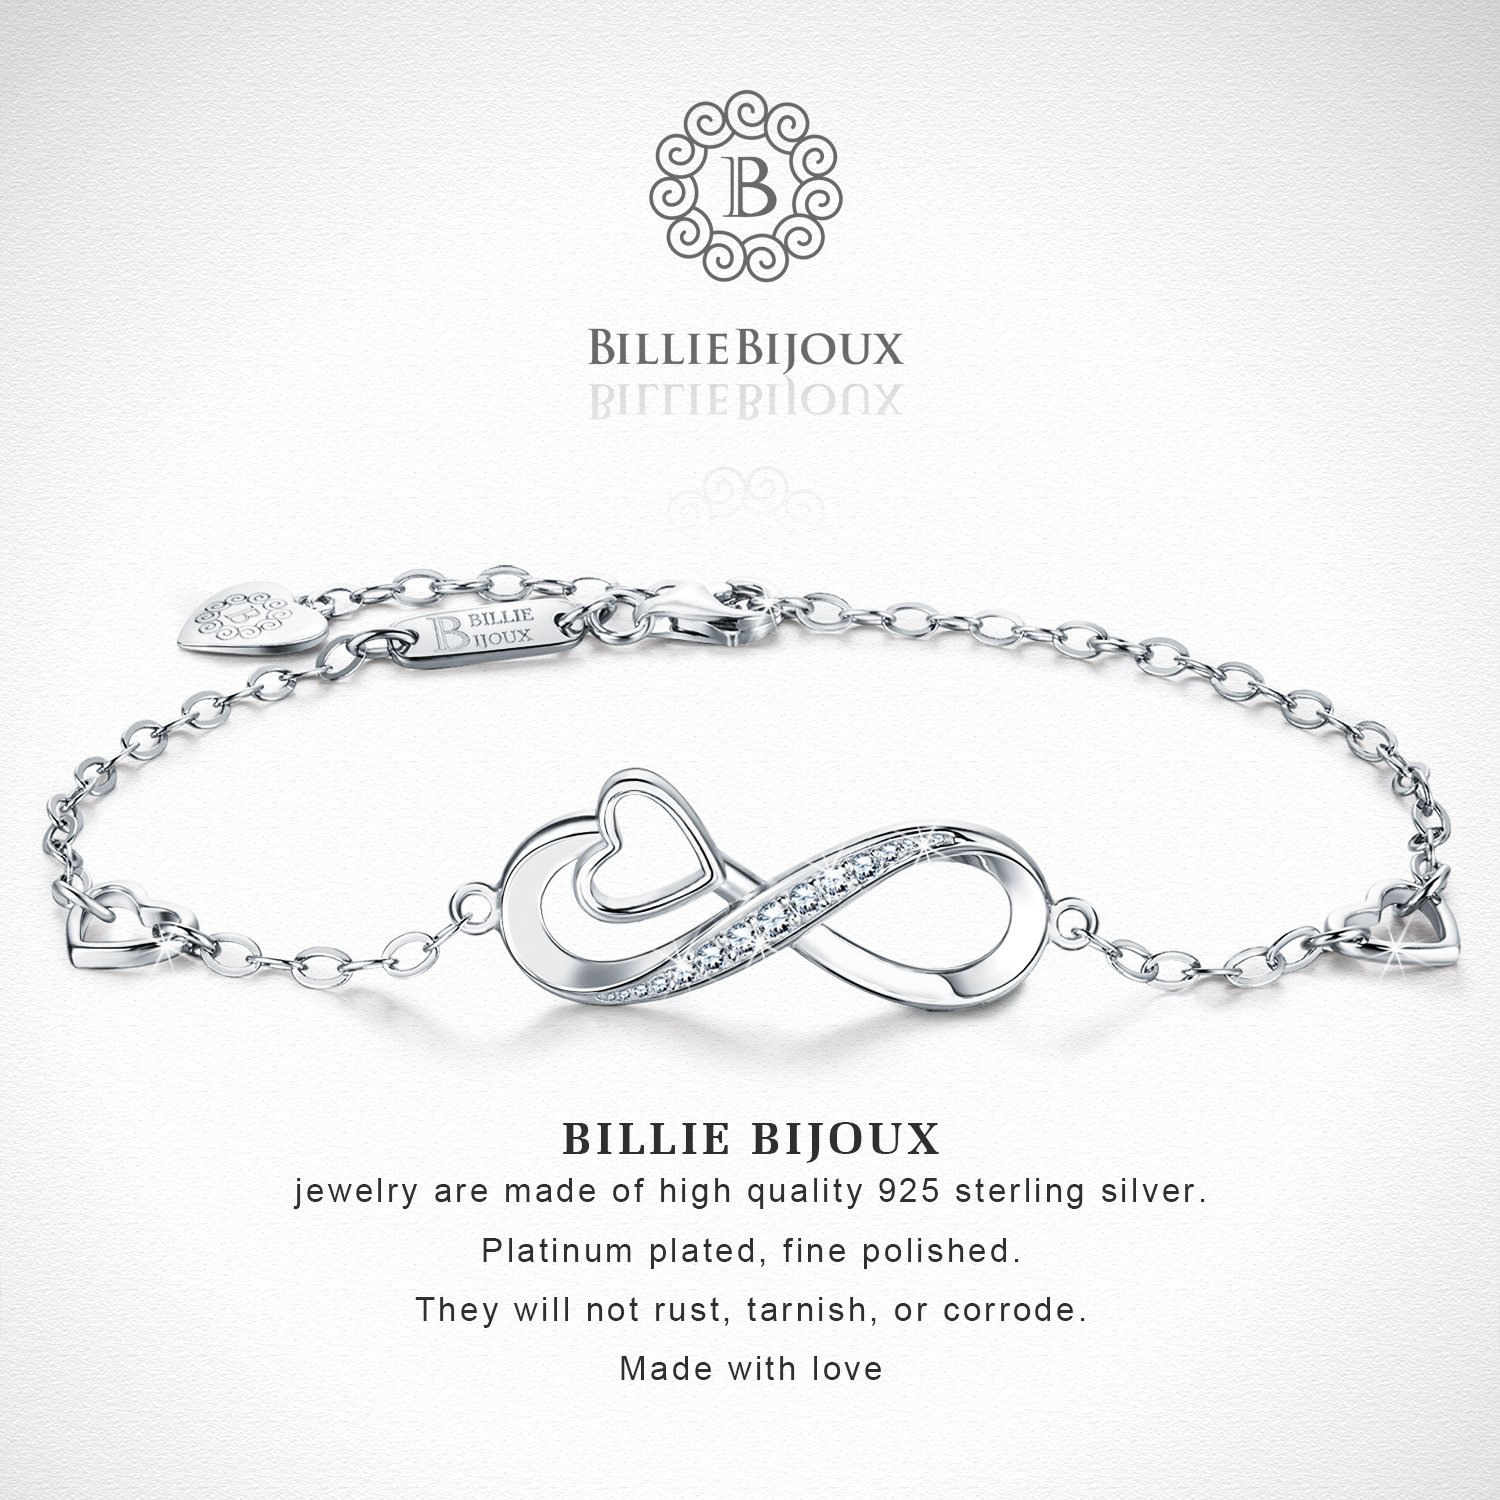 Billie Bijoux 925 Sterling Silver Infinity Heart Endless Love Symbol Charm Adjustable Bracelet White Gold Plated Women' s Gift for Graduation Birthday Valentine's Christmas Day by Billie Bijoux (Image #4)